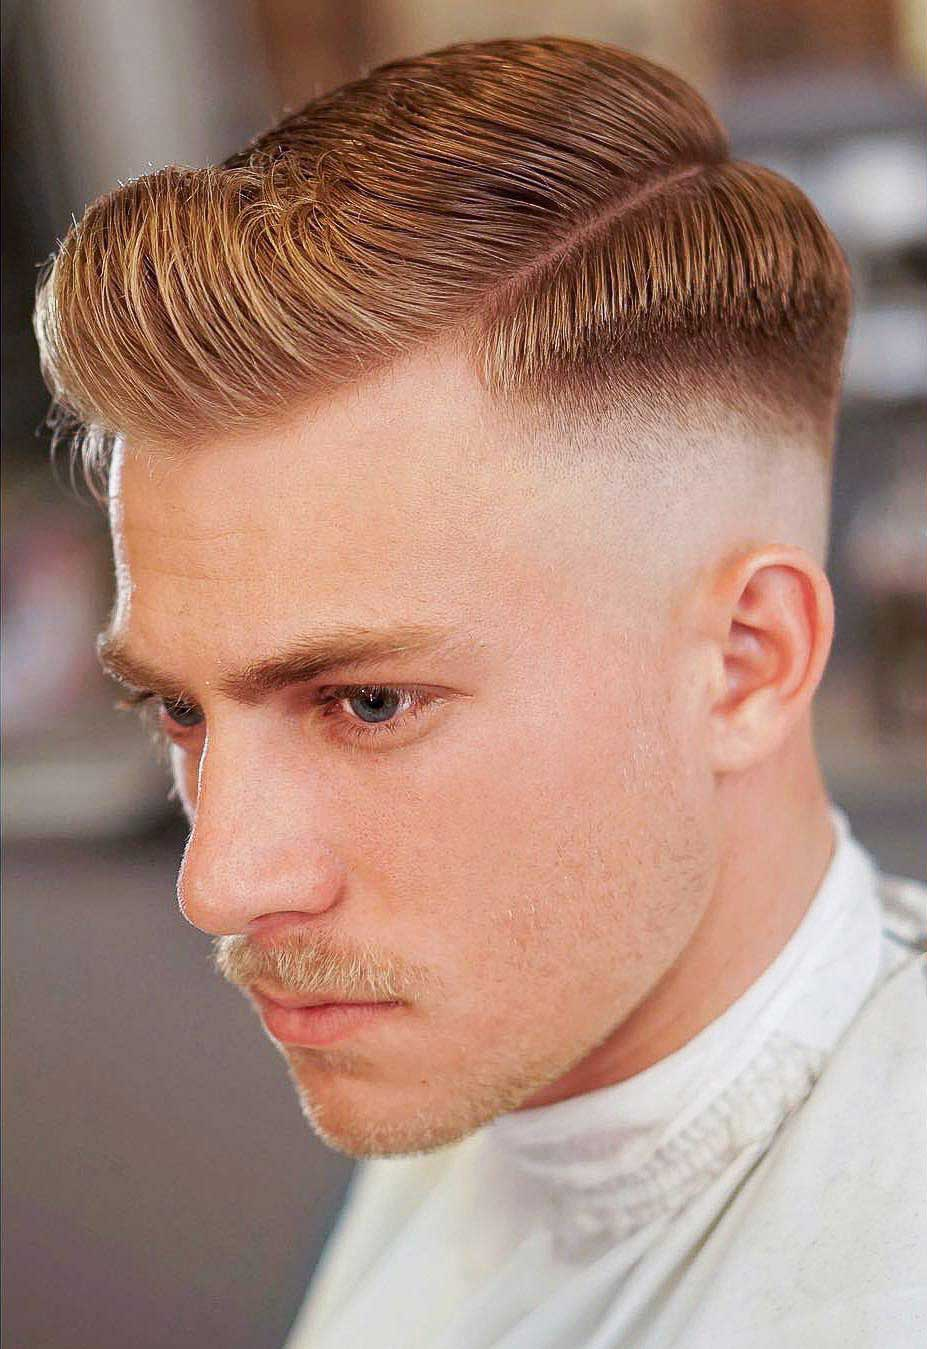 80 Skin Fade Haircut Ideas Trendsetter For 2018